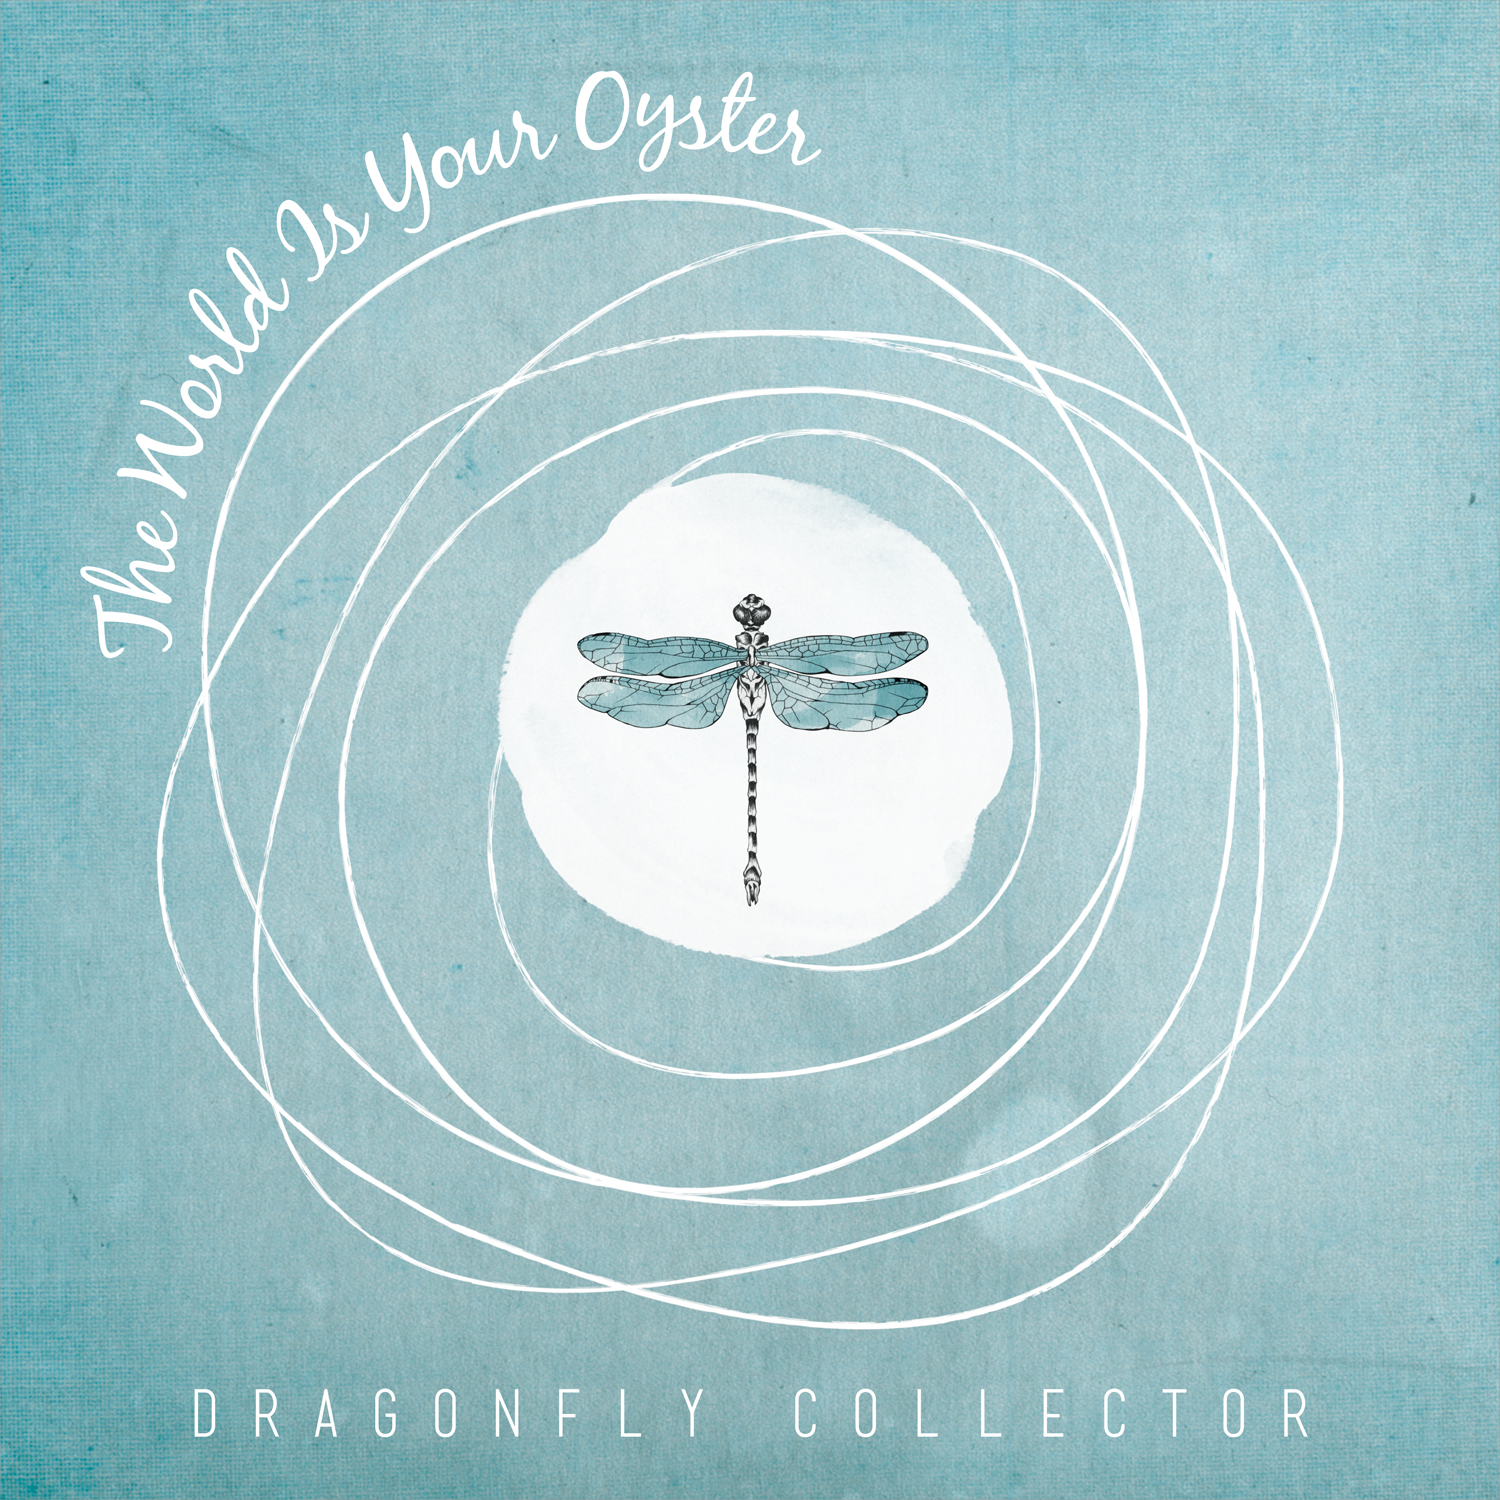 The World Is Your Oyster - Dragonfly Collector (Vinyl LP)